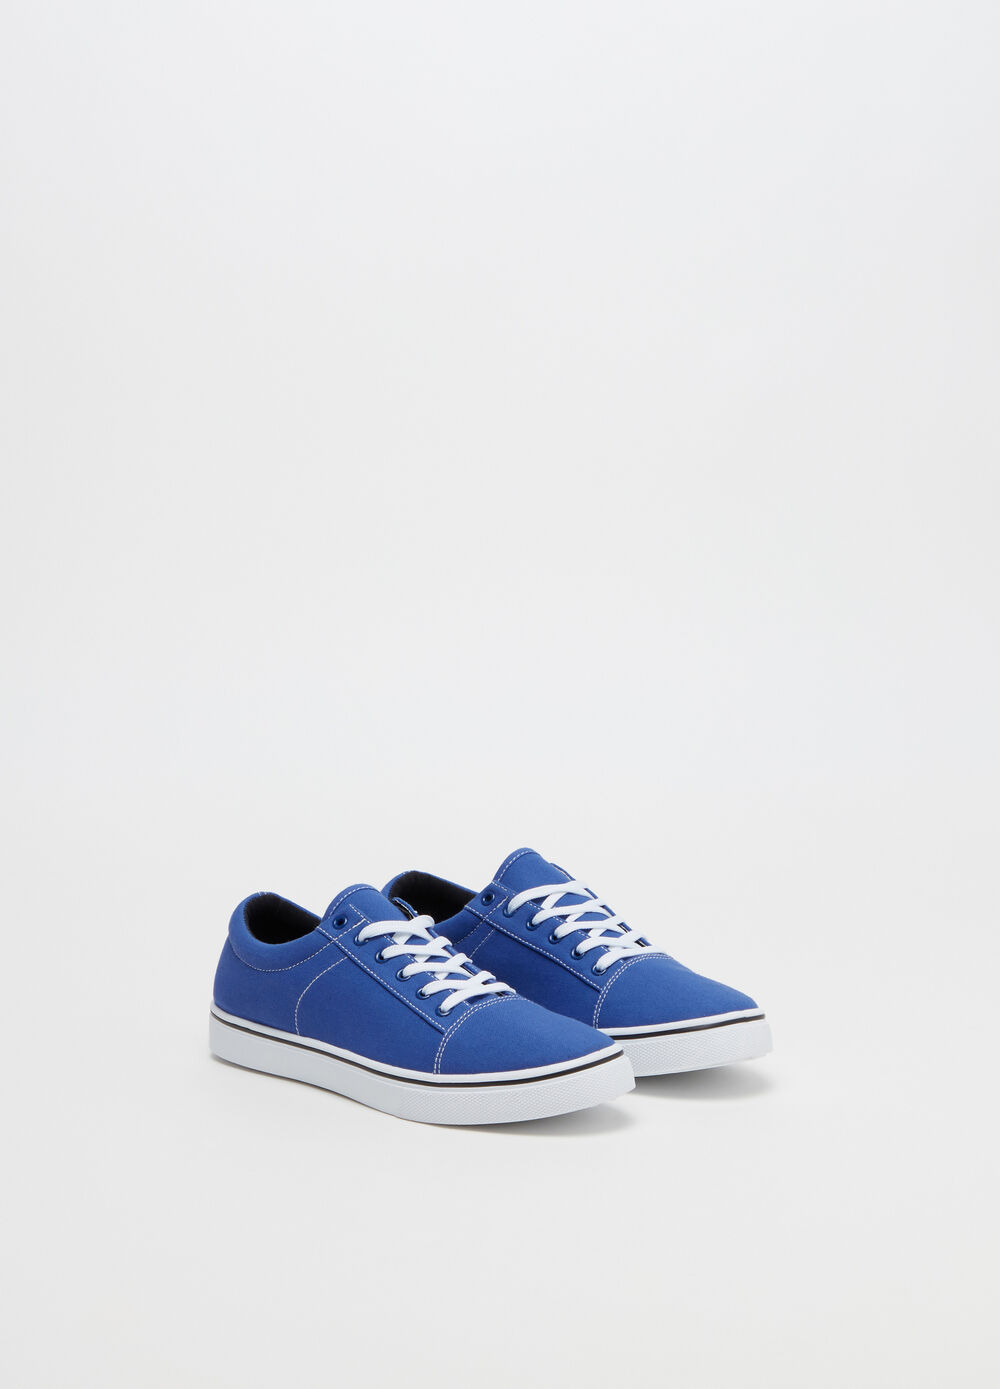 Sneakers with contrasting stitching and laces